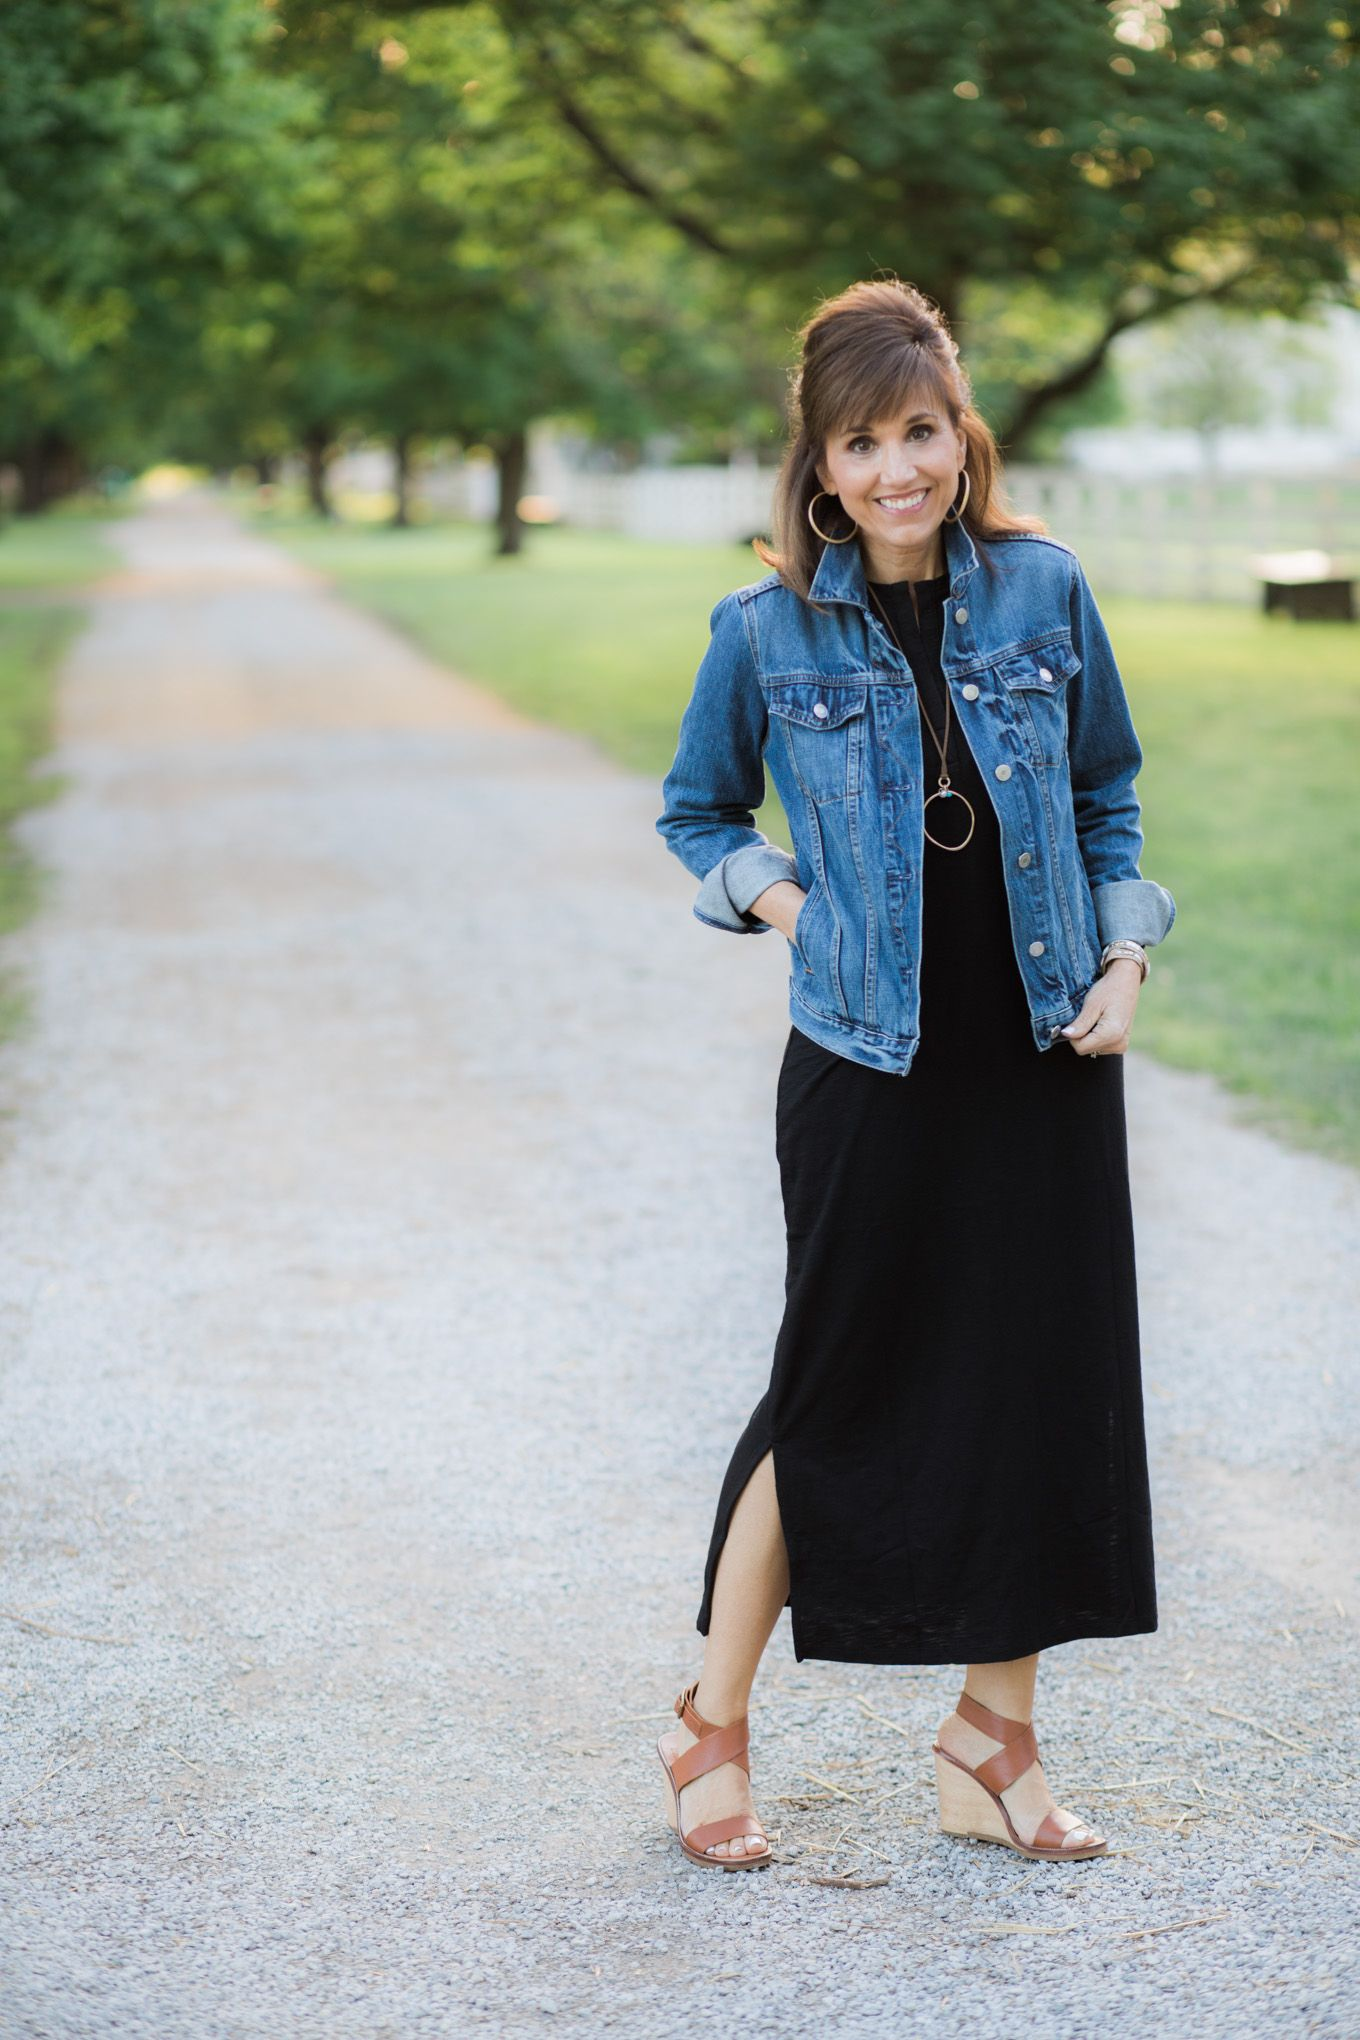 97ed1e370a6 Black Maxi Dress + Denim Jacket - I could easily re-create this with my  maxi skirt and a t-shirt. Comfy and easy look!